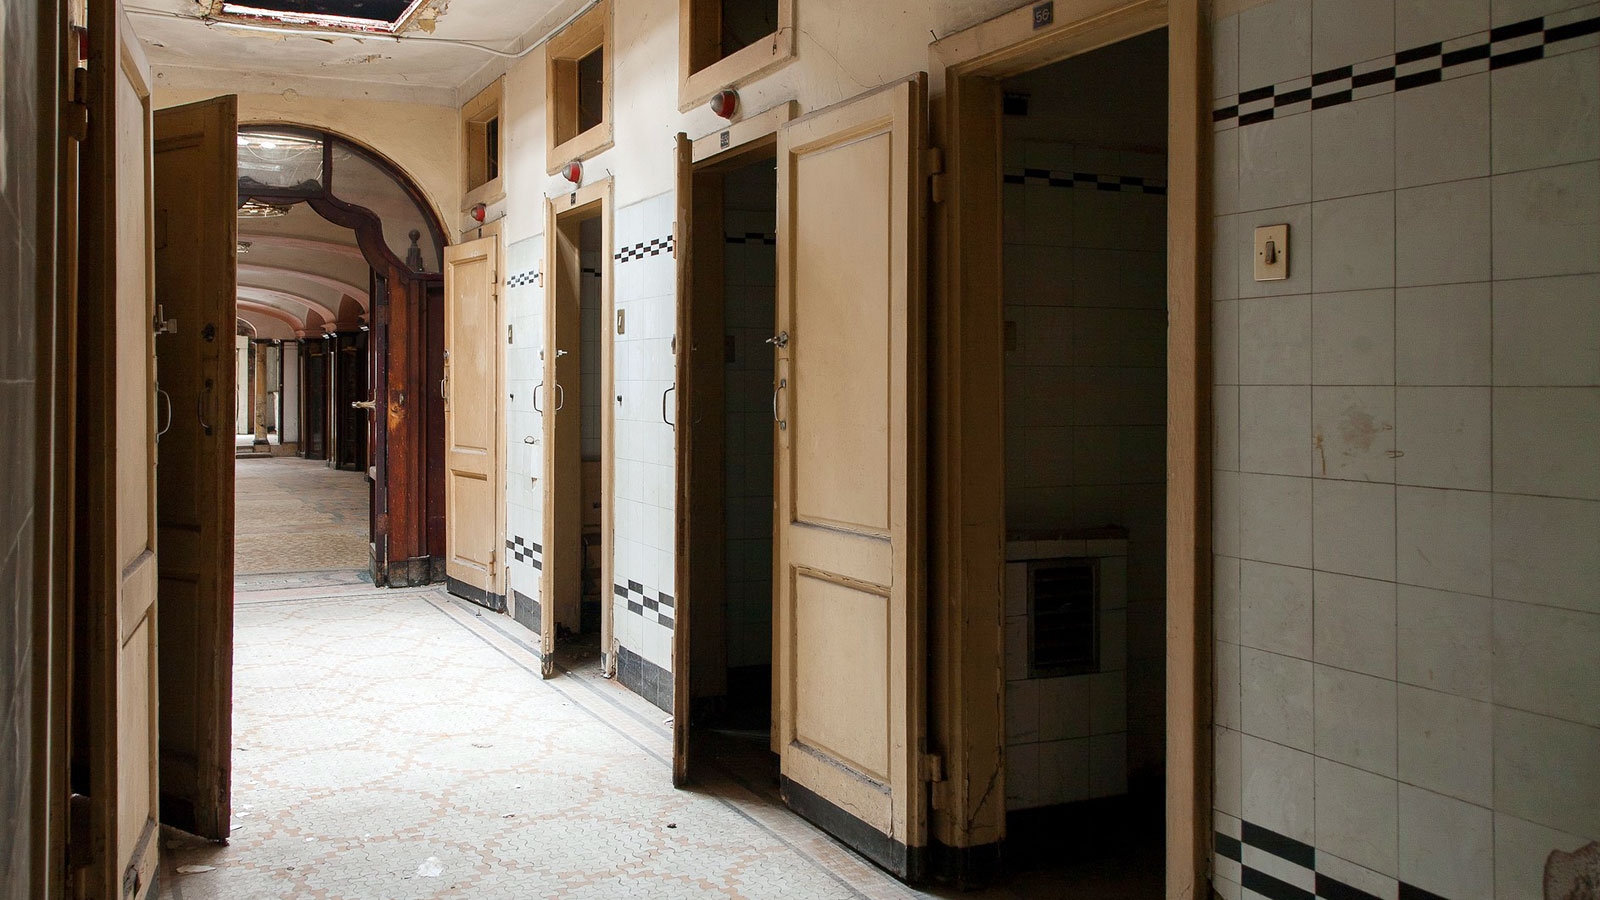 Inside milan s crumbling art deco day hotel cnn travel